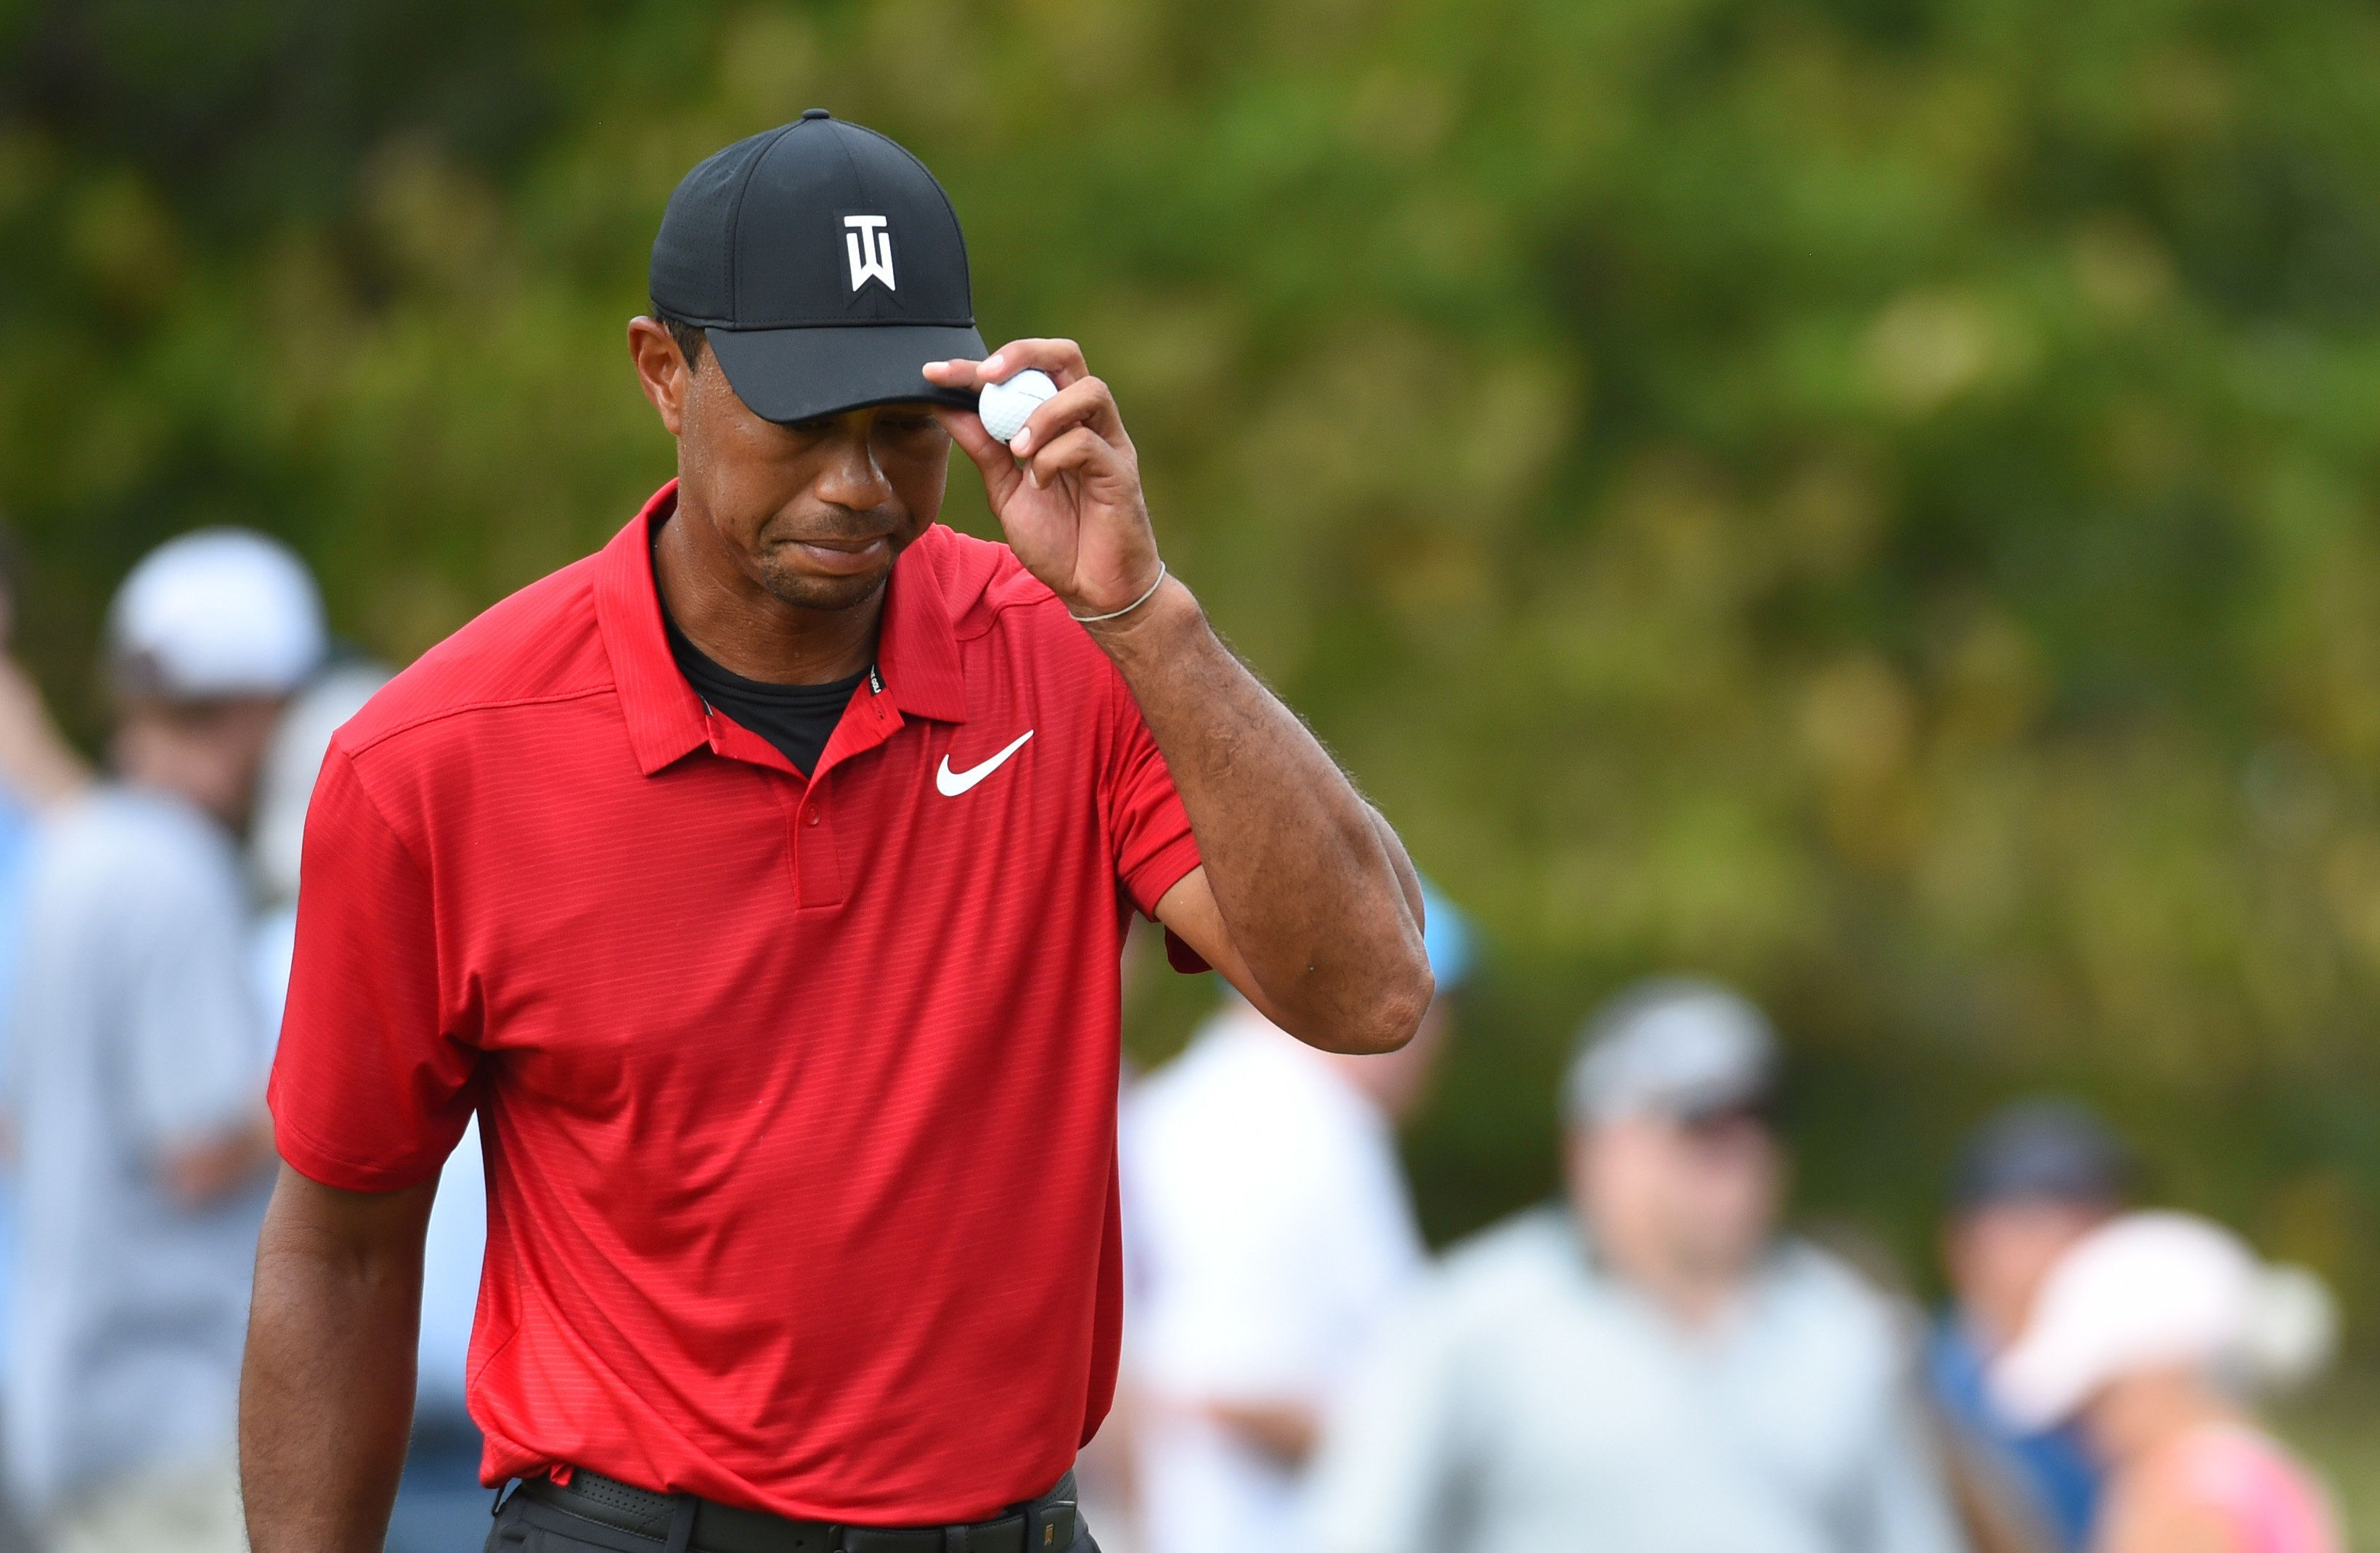 Sep 23, 2018; Atlanta, GA, USA;  Tiger Woods on reacts after his putt on the second green during the final round of the Tour Championship golf tournament at East Lake Golf Club. Mandatory Credit: John David Mercer-USA TODAY Sports